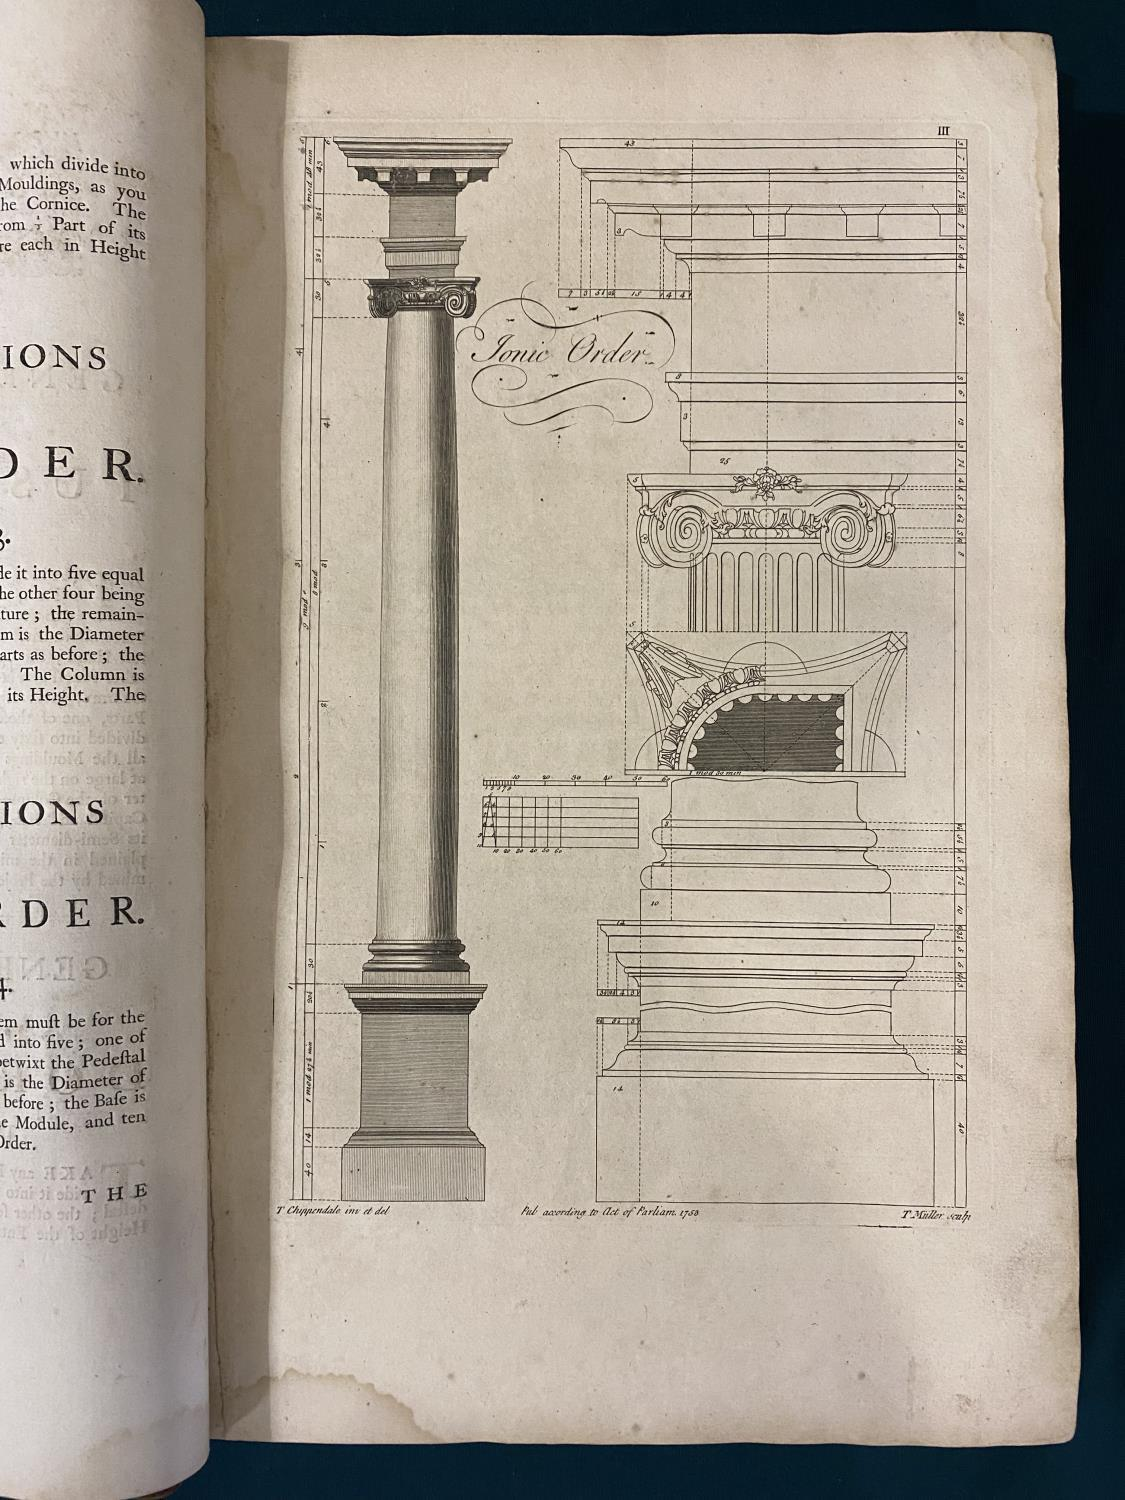 Chippendale, Thomas. The Gentleman and Cabinet-Maker's Director, second edition, 151 [of 160] - Image 2 of 5